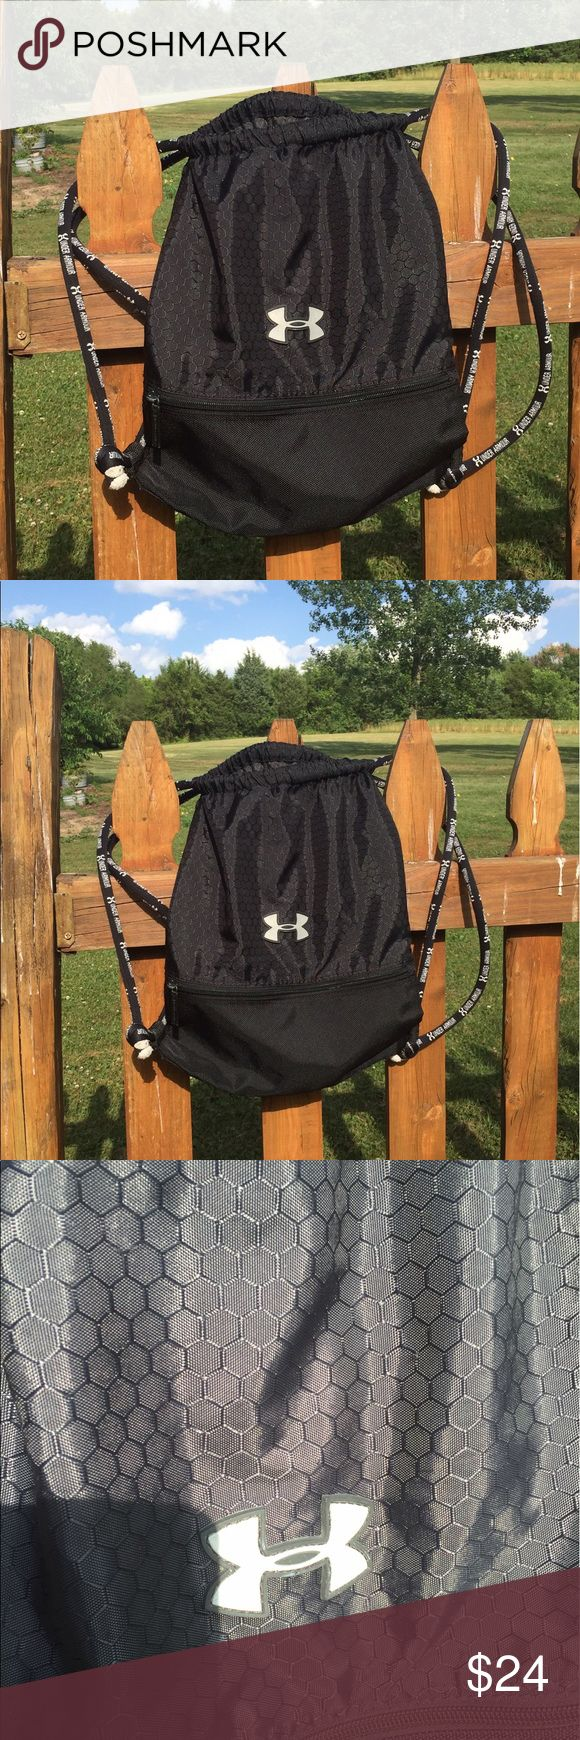 Under Armour Cinch Drawstring Bag Backpack Super gently preowned. Be sure to view the other items in our closet. We offer  women's, Mens and kids items in a variety of sizes. Bundle and save!! Thank you for viewing our item!! Under Armour Bags Backpacks